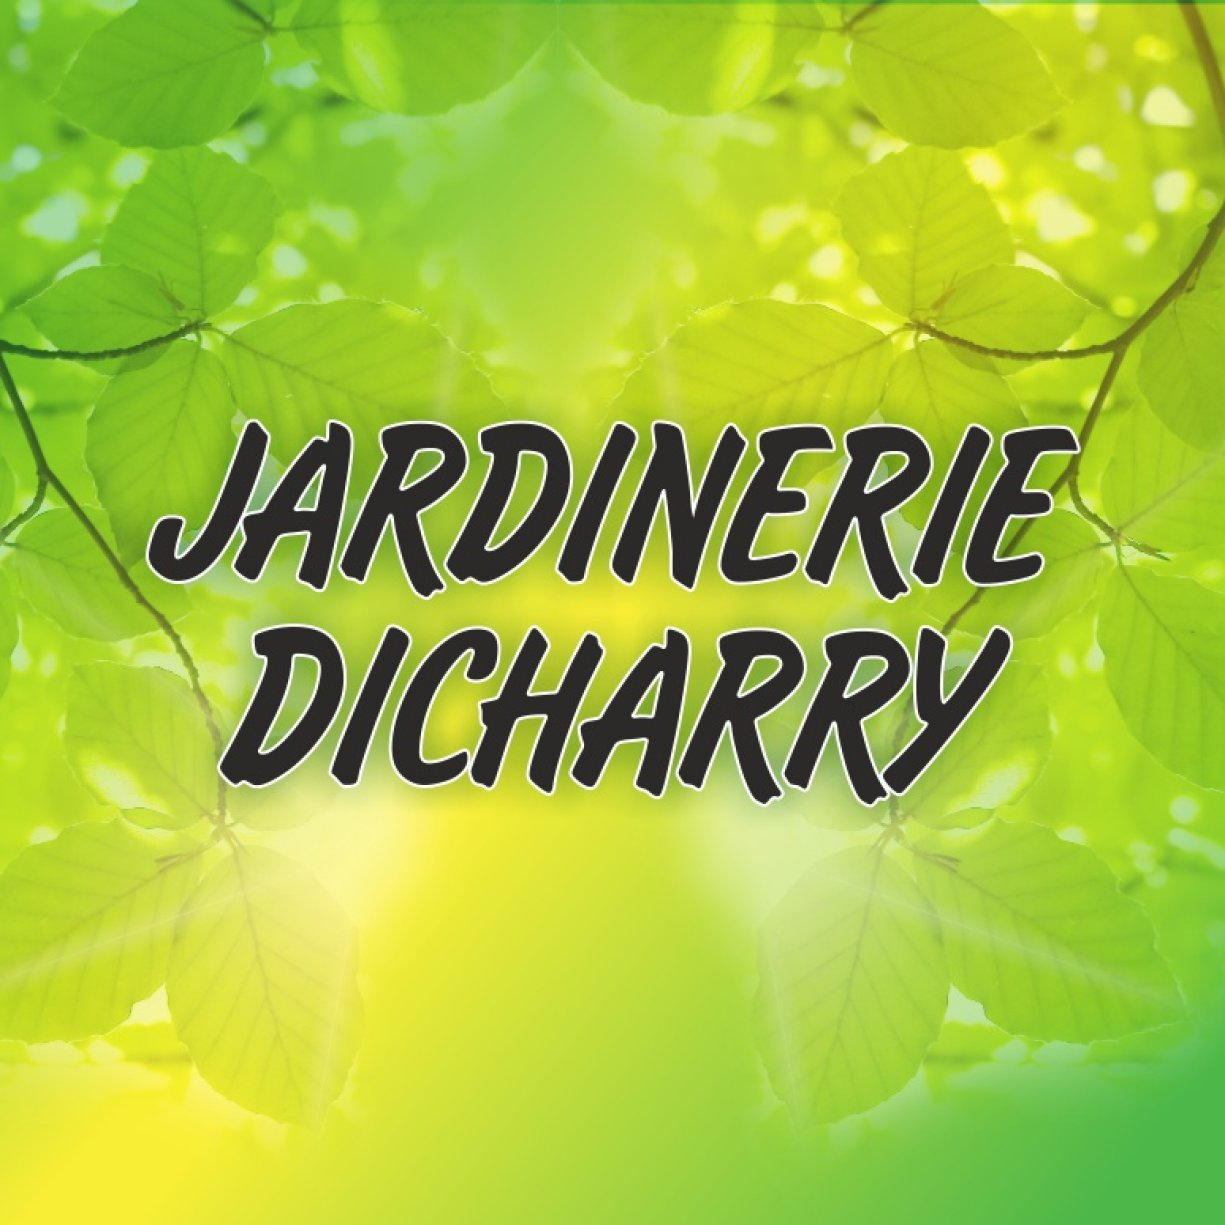 Dicharry Jardinerie